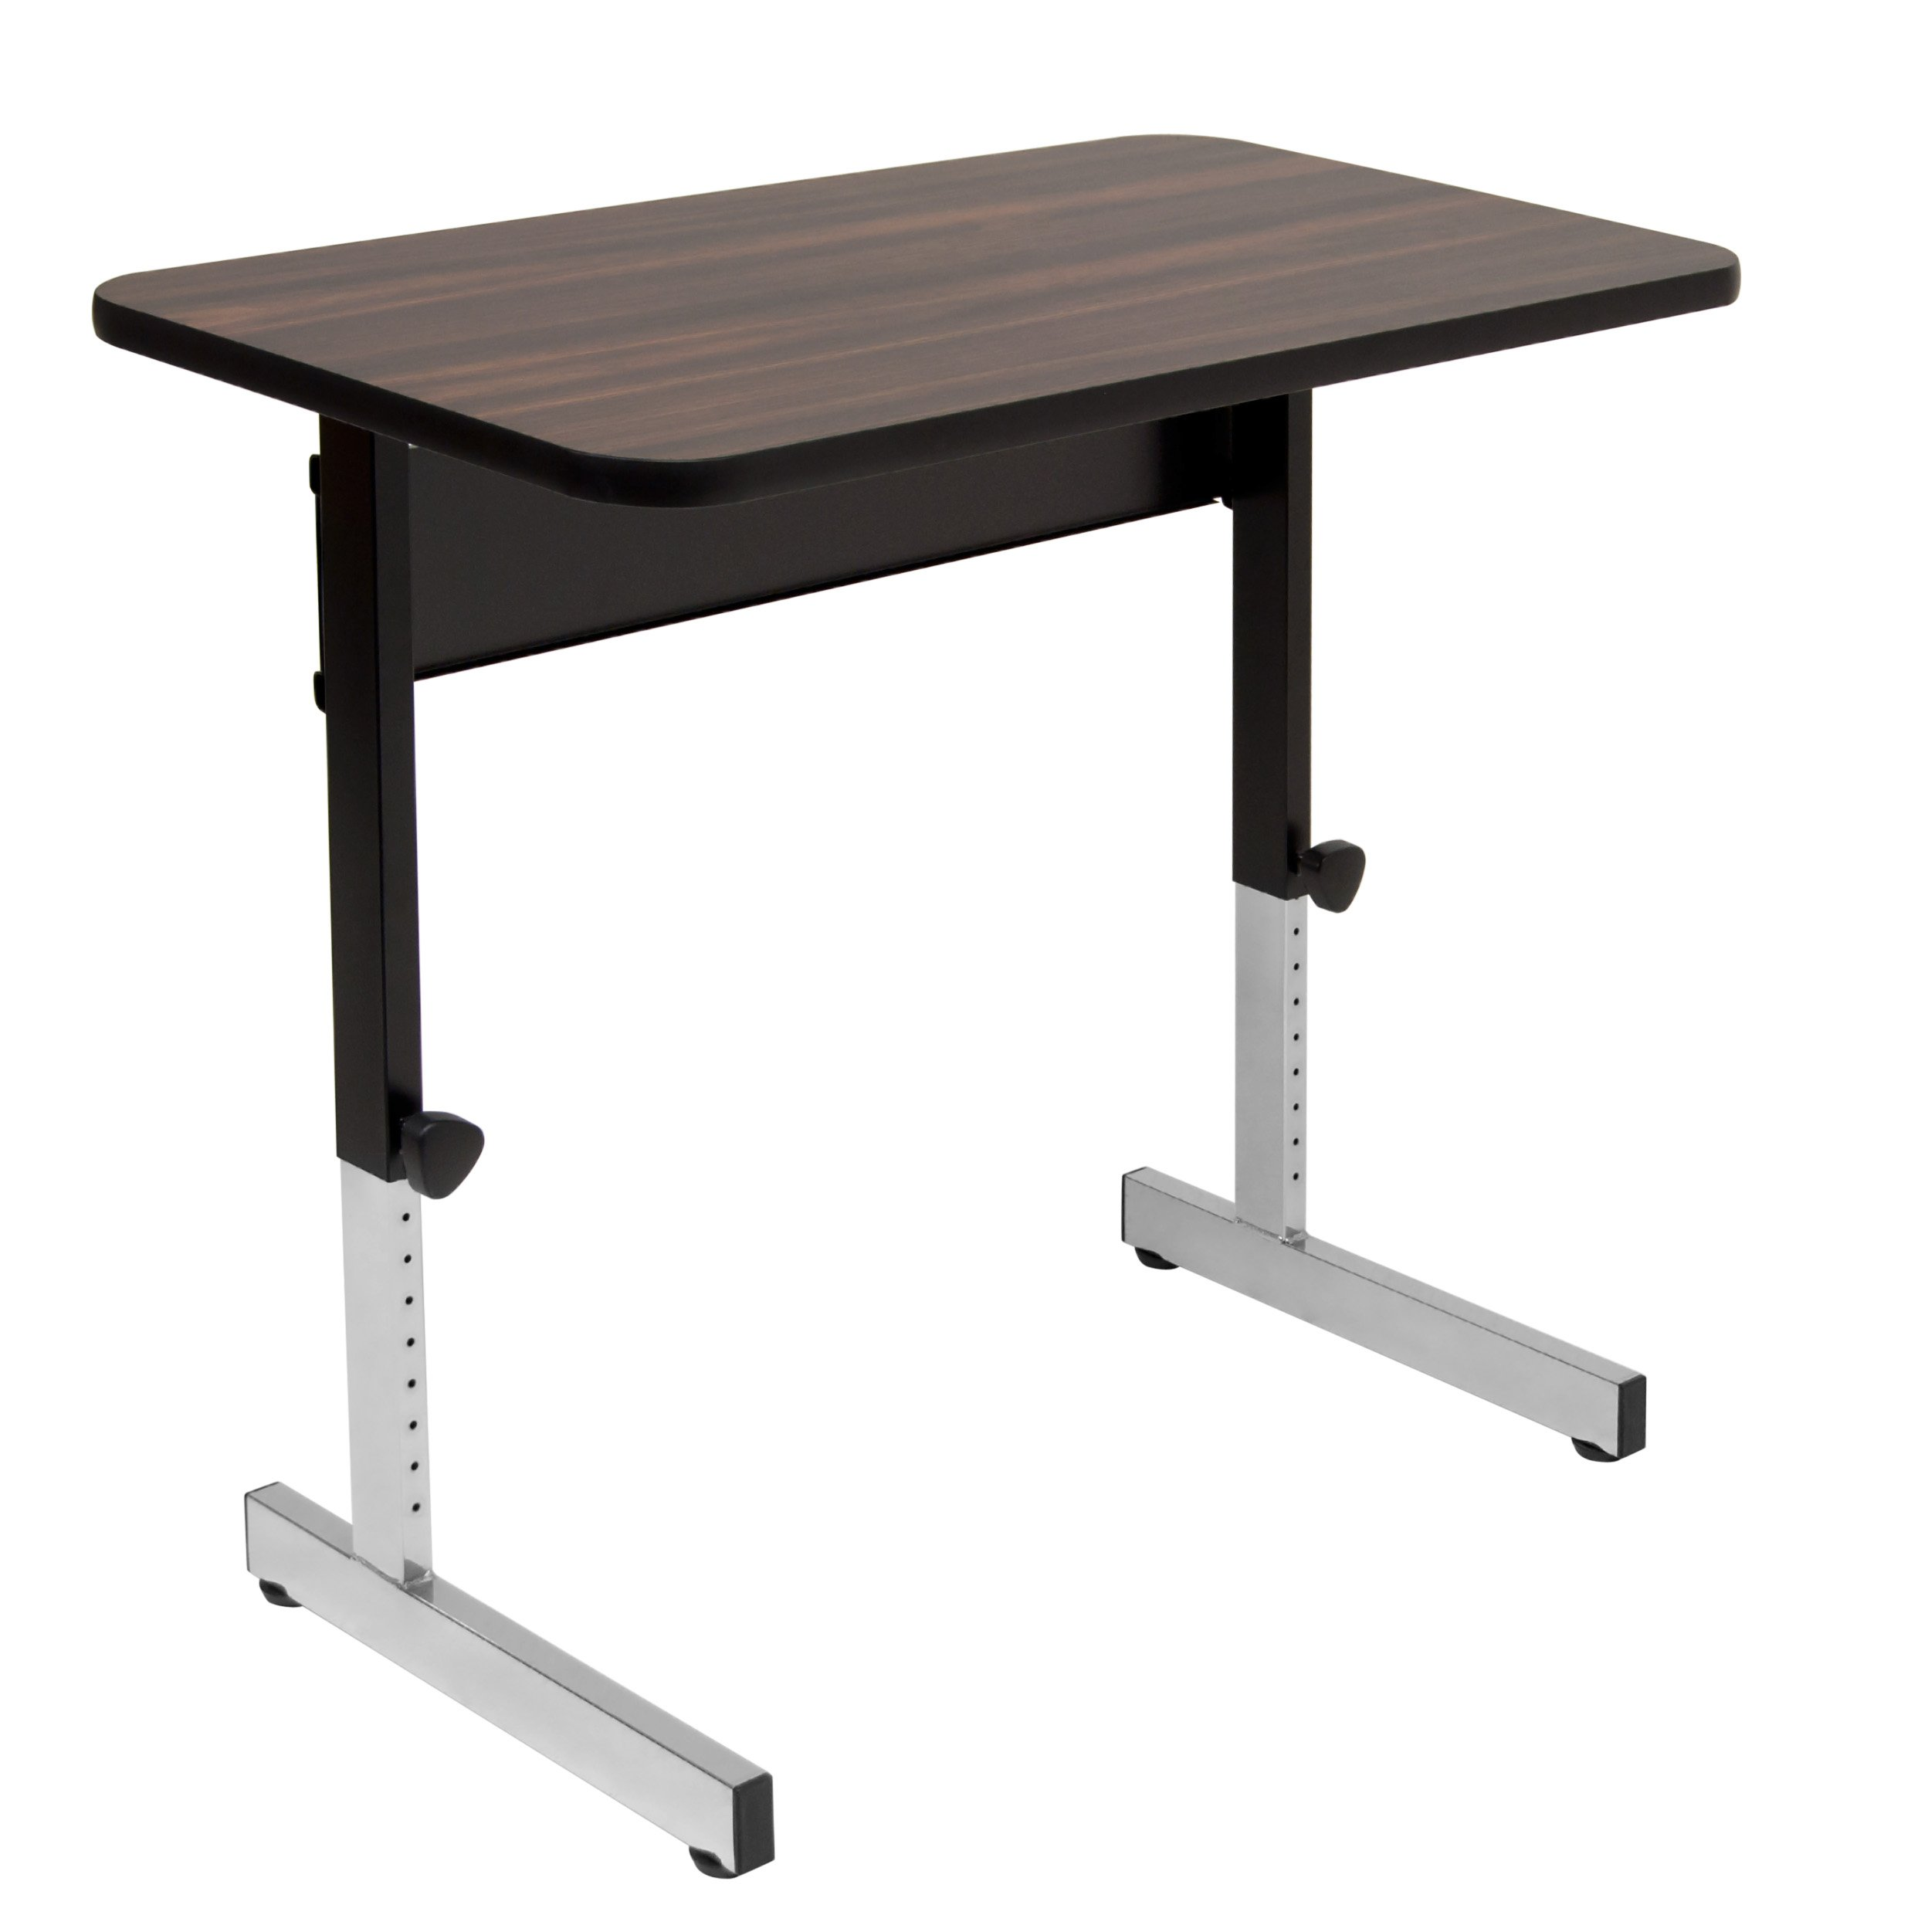 Calico Designs Adapta Height Adjustable Office Desk, All-Purpose Utility Table, Sit to Stand up Desk Home Computer Desk, 23'' - 32'' in Powder Coated Black Frame and 1'' Thick Walnut Top, 36 Inch by Calico Designs